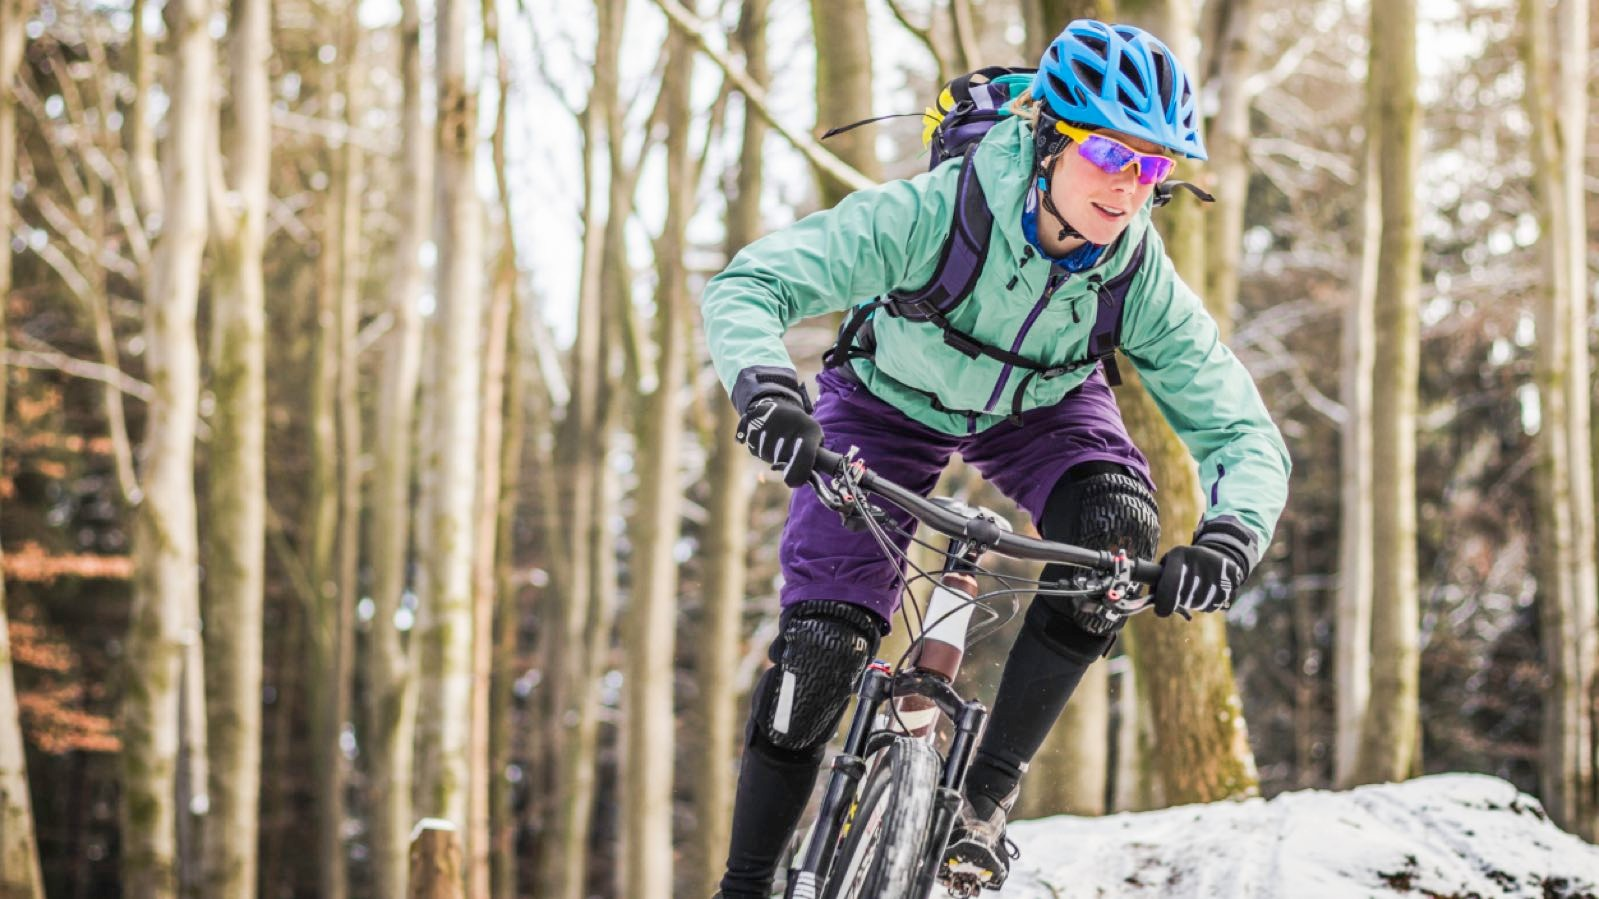 Mountain bikers might want to wear shorts through winter, but tights can be added underneath for those bitterly cold days